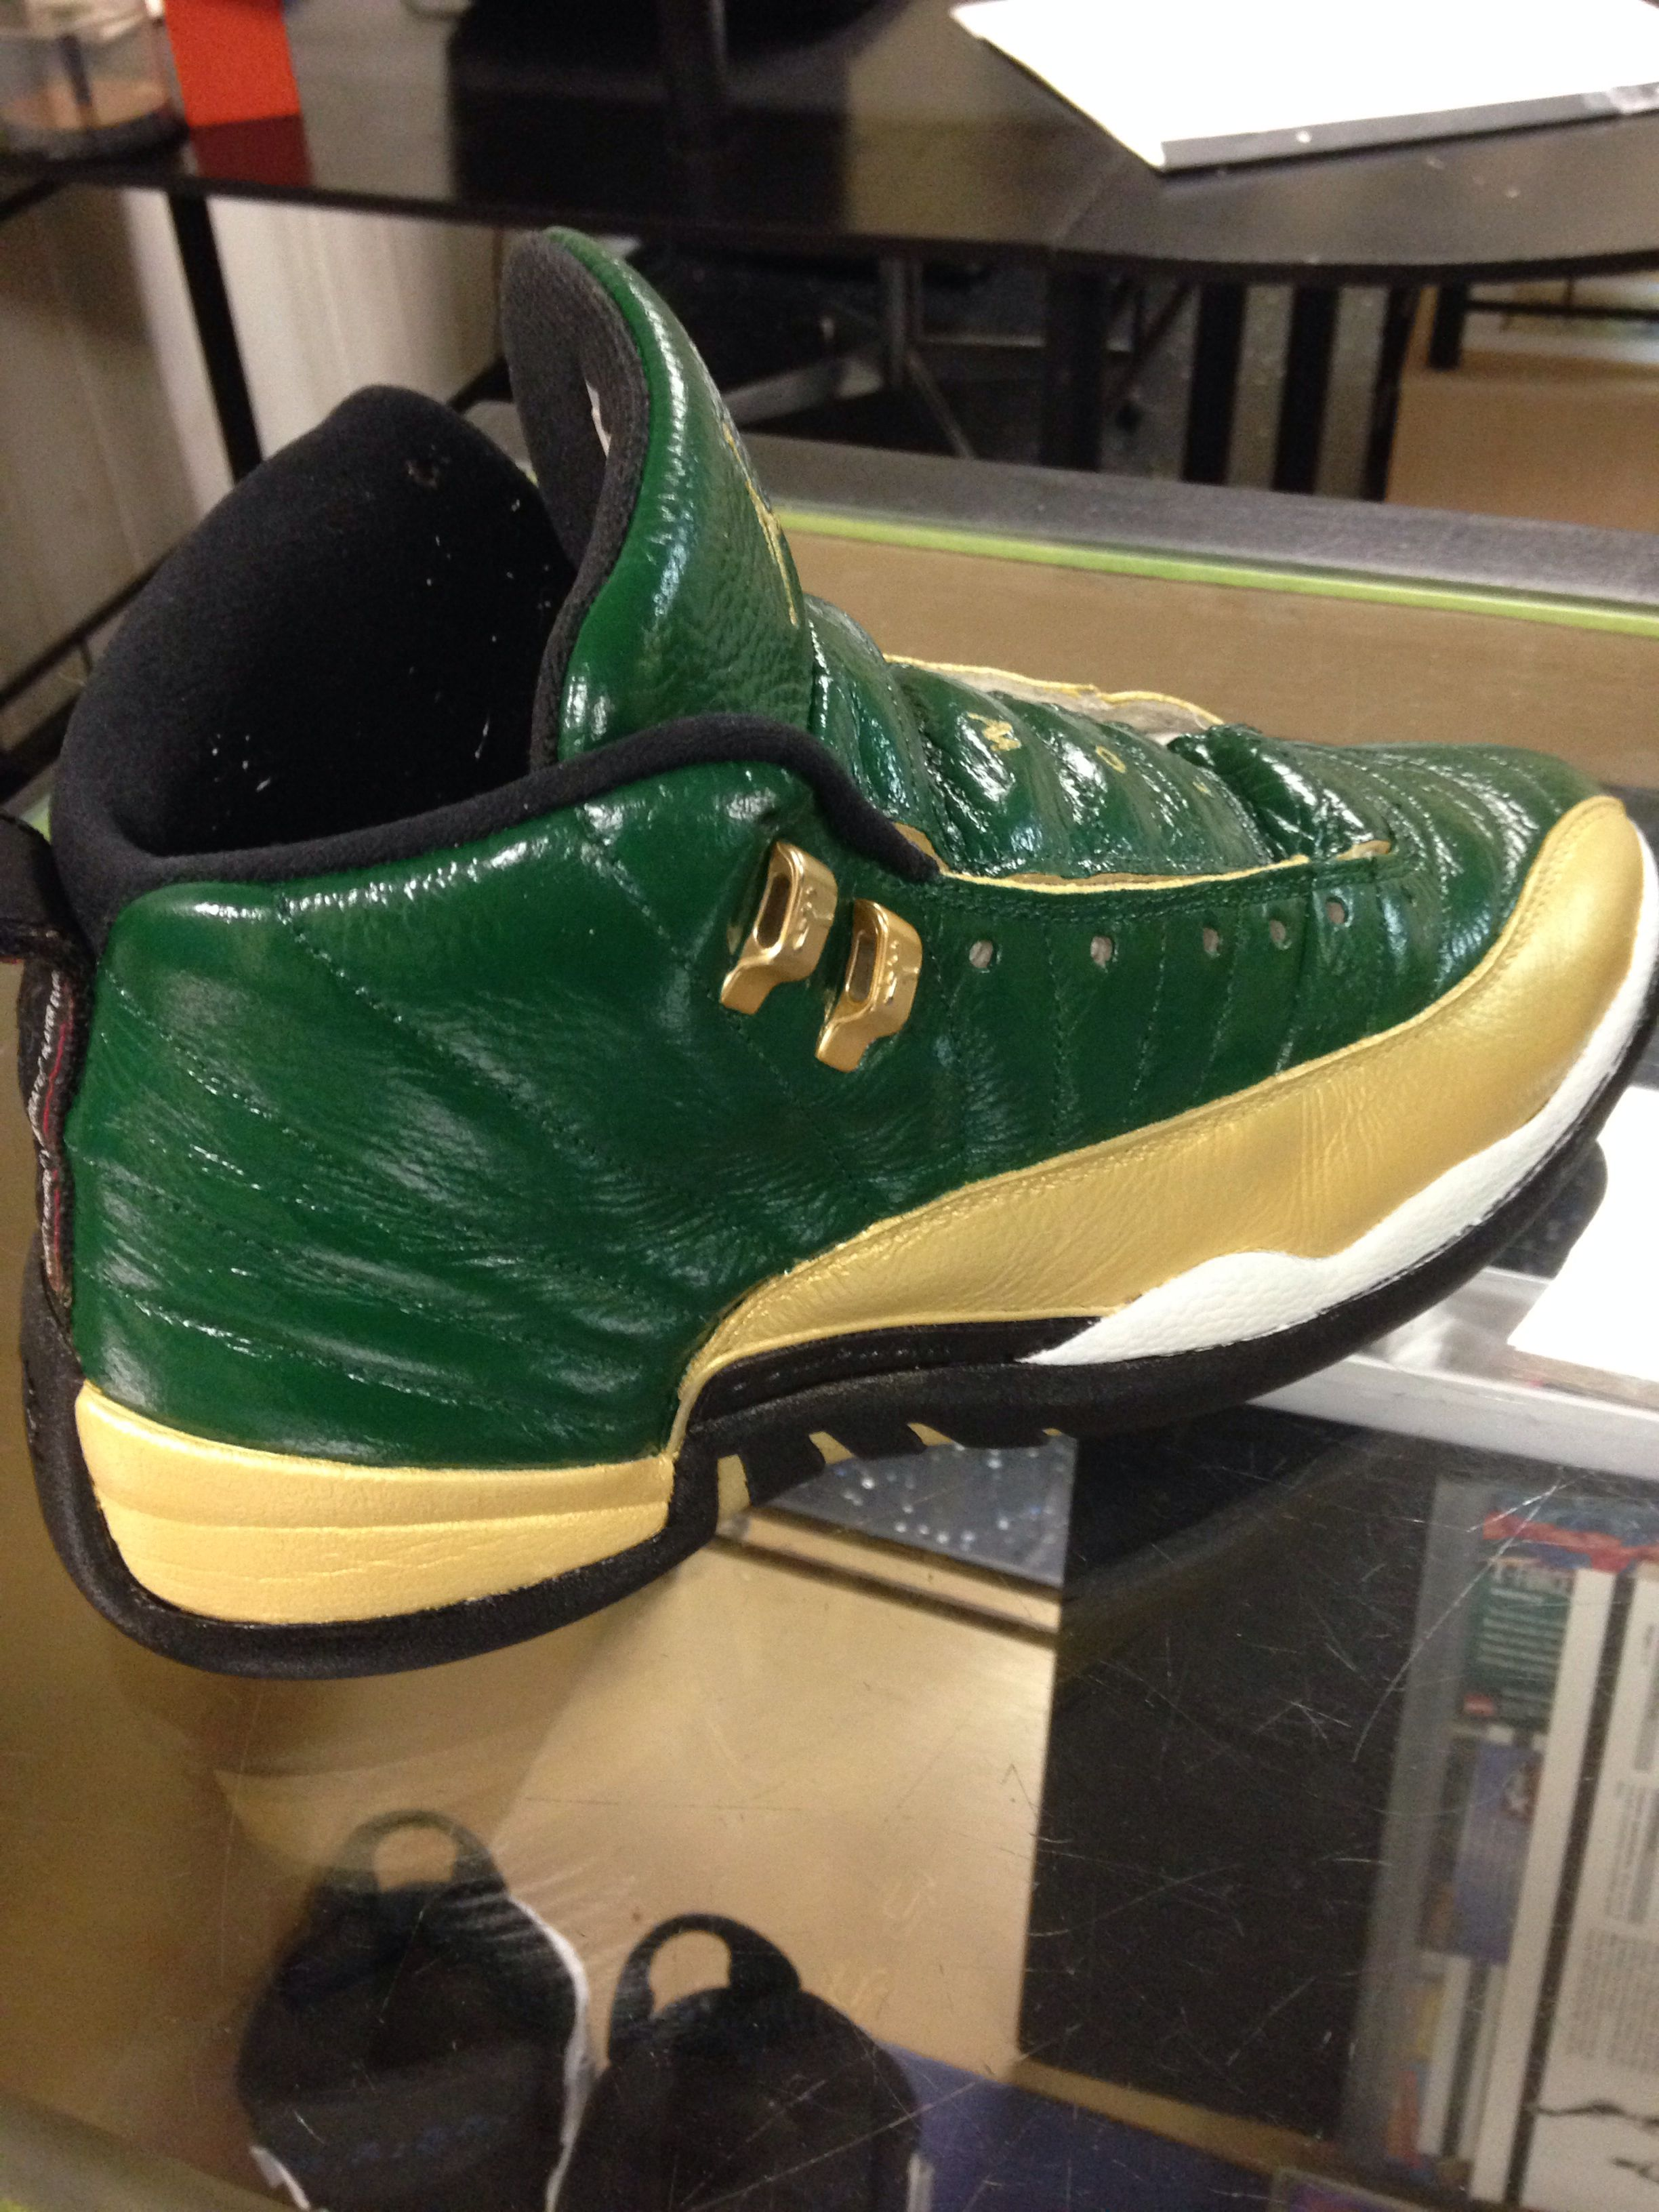 b42cfeebc98d0 Jordan celtics Boston Goat Angelus paint Dystinkd customz Custom Sneakers